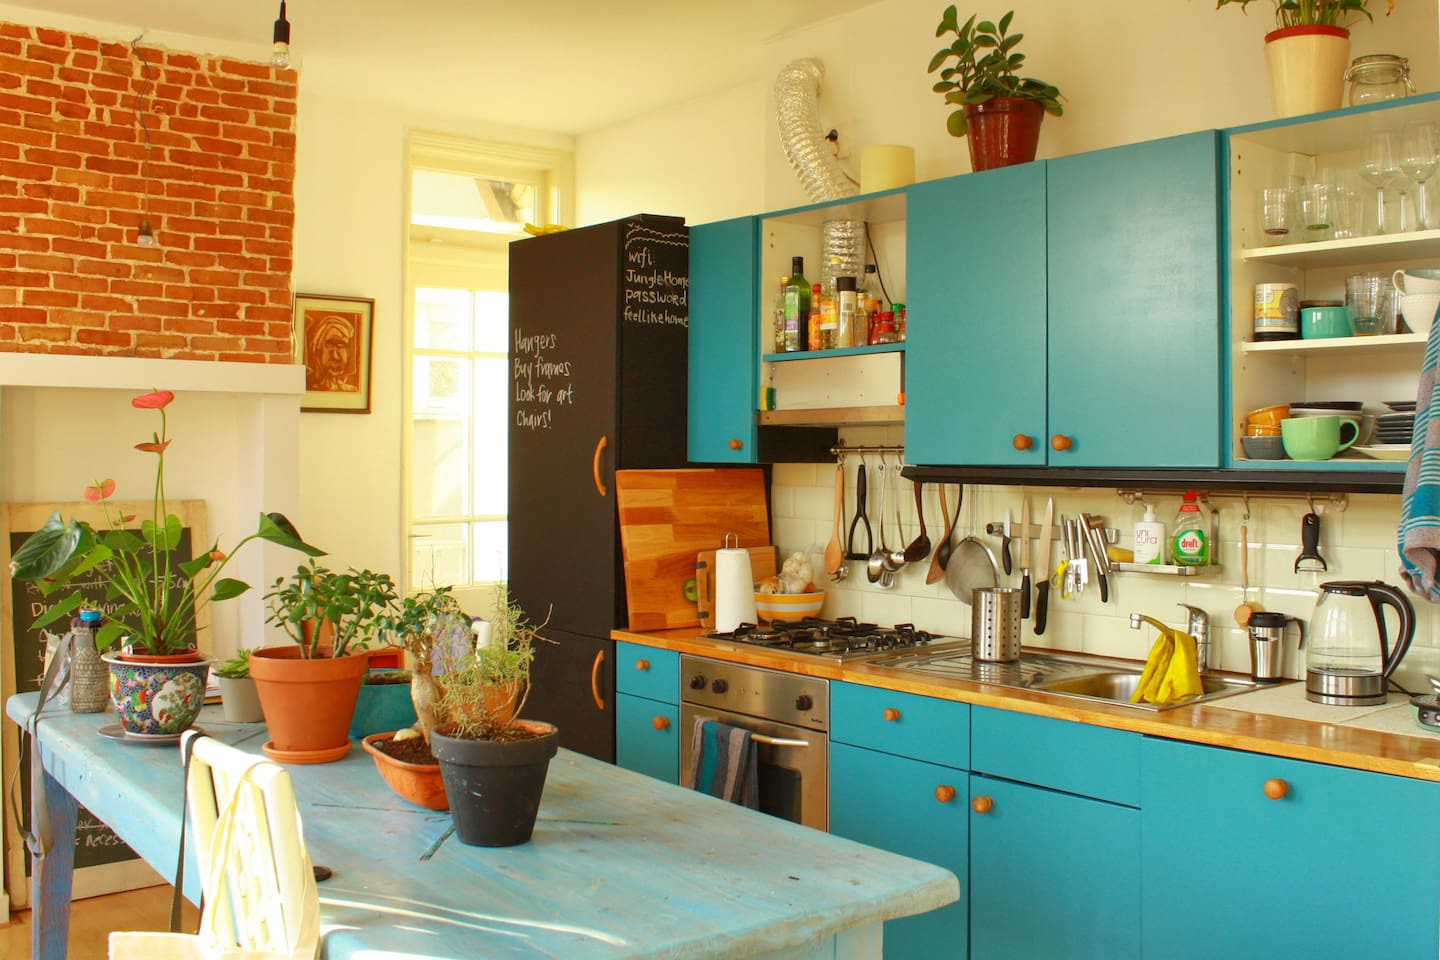 Kitchen in a very sunny day